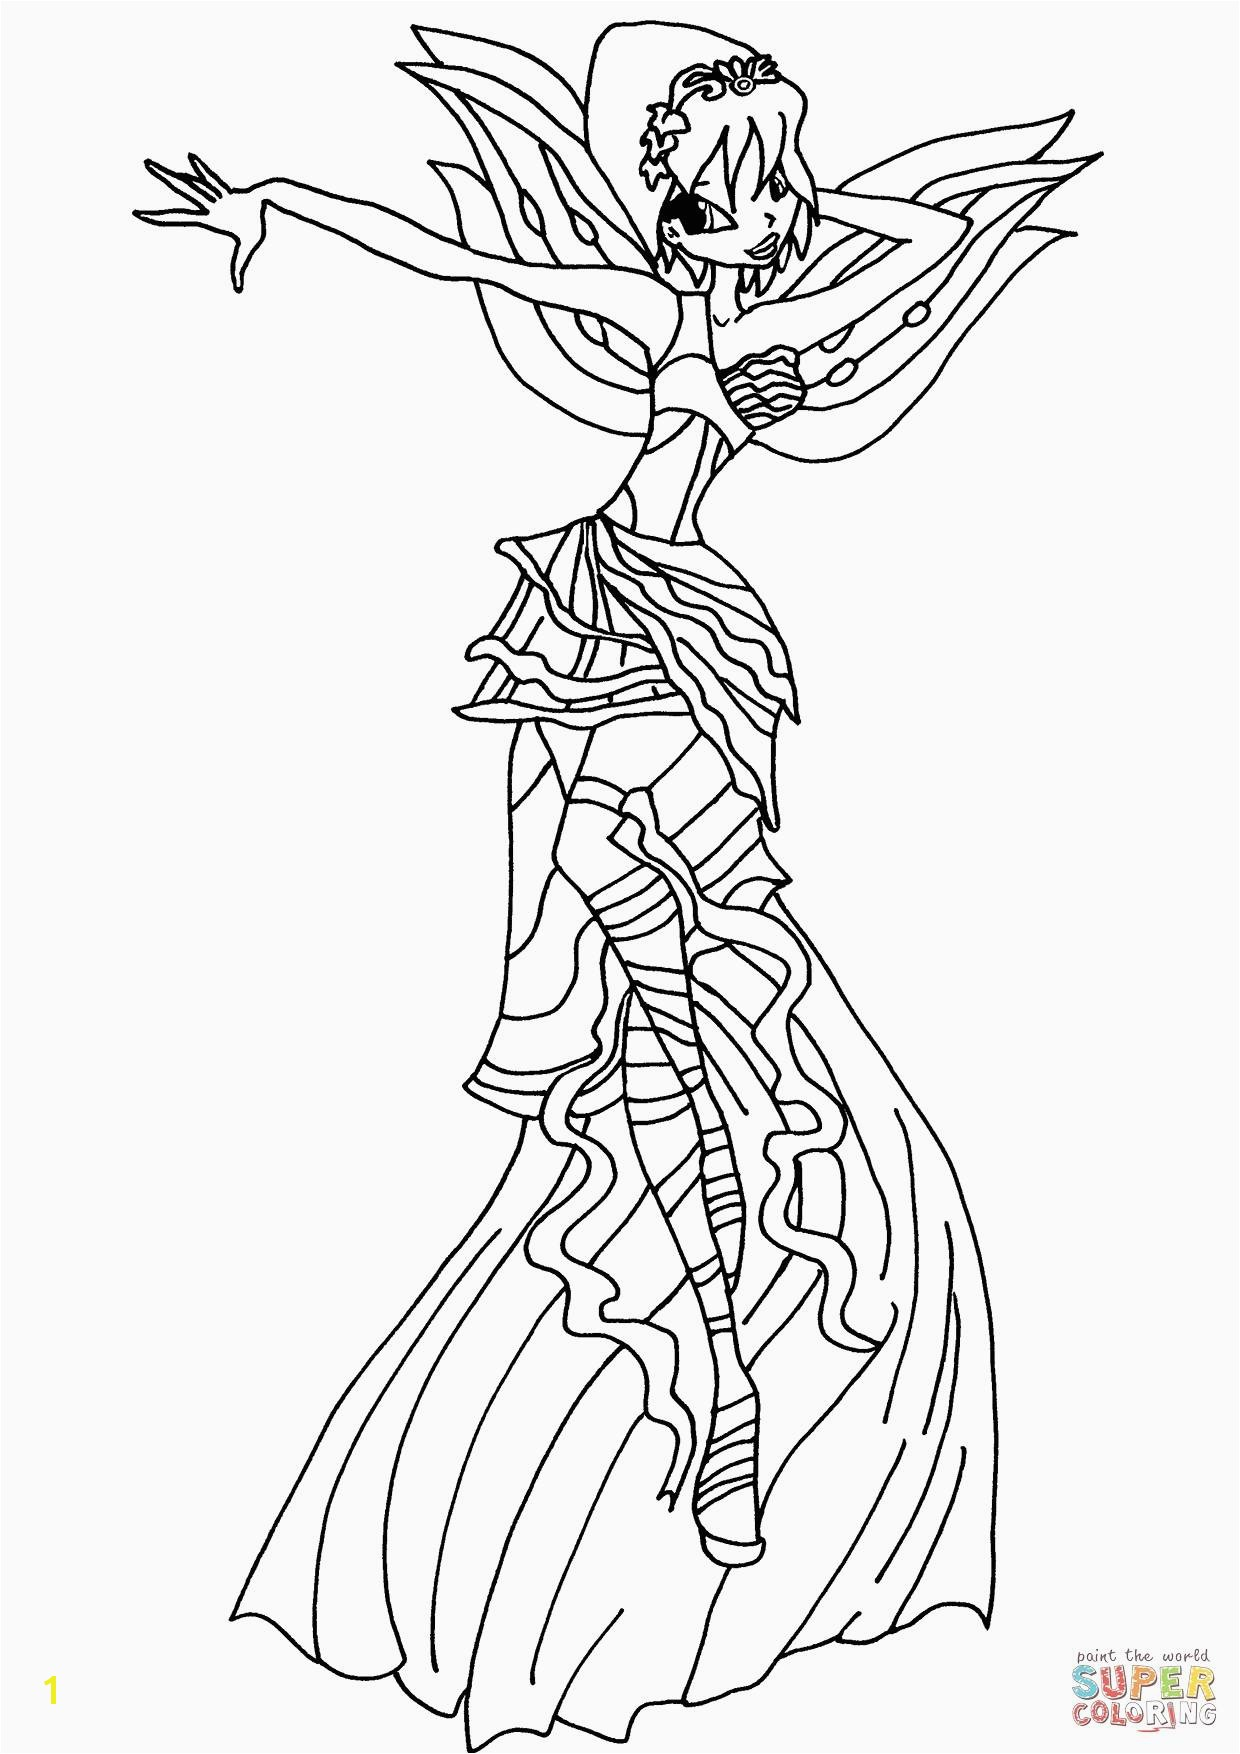 Winx Club Coloring Pages Best Tecna Winx Club Coloring Pages for Girls Elegant Winx Club